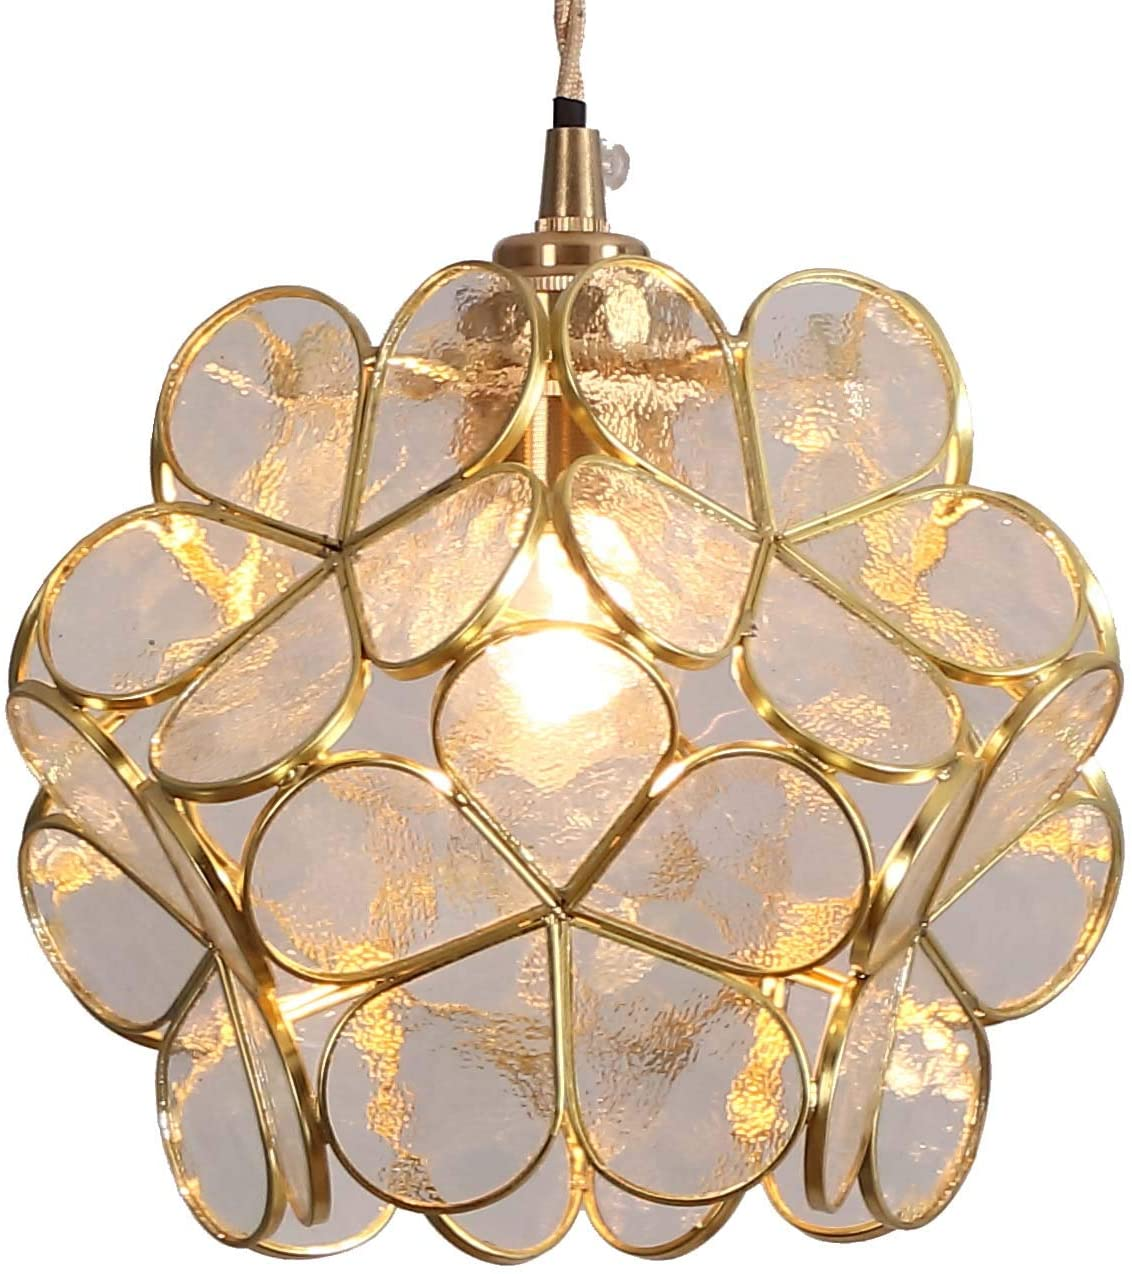 Bieye L10744 Flower Petals Tiffany Style Stained Glass Ceiling Pendant Light with 8-inch Wide Lampshade (Transparent White)